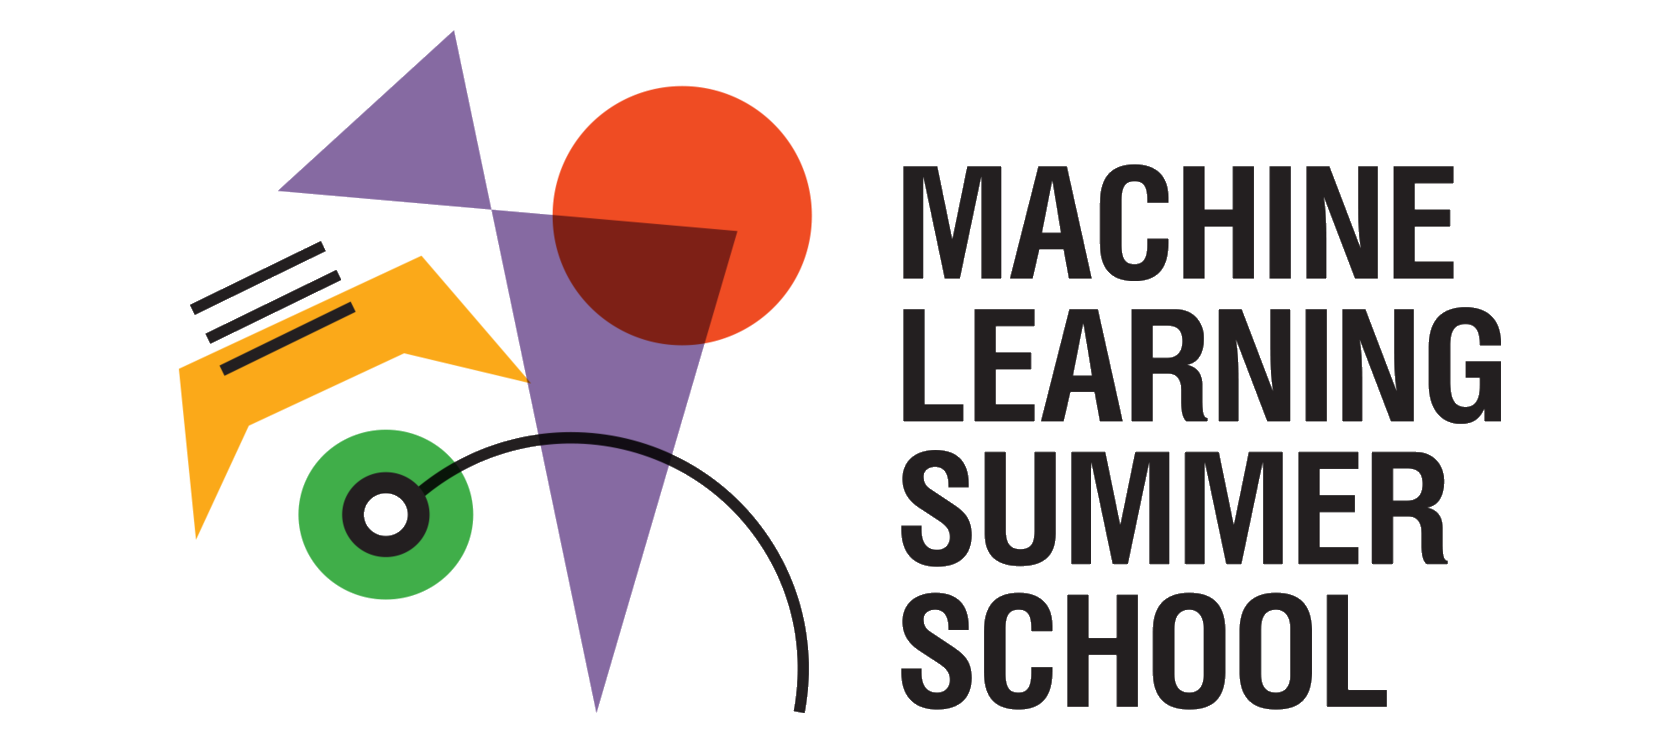 Machine Learning Summer School 2019 - Moscow, Russia